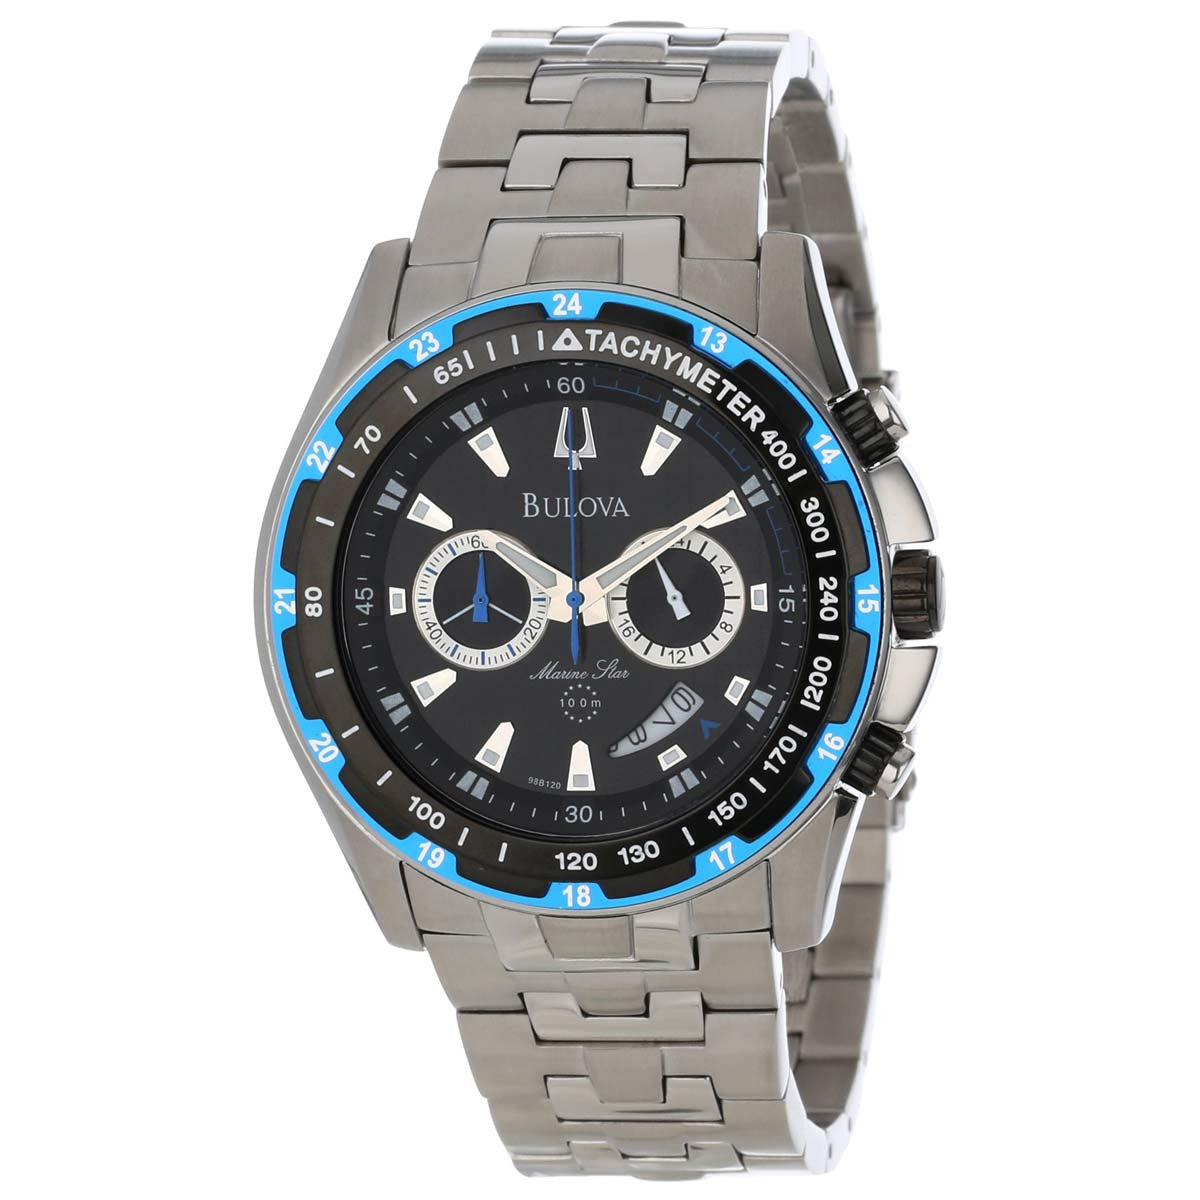 Bulova Men's Marine Star Chronograph Watch 98B120